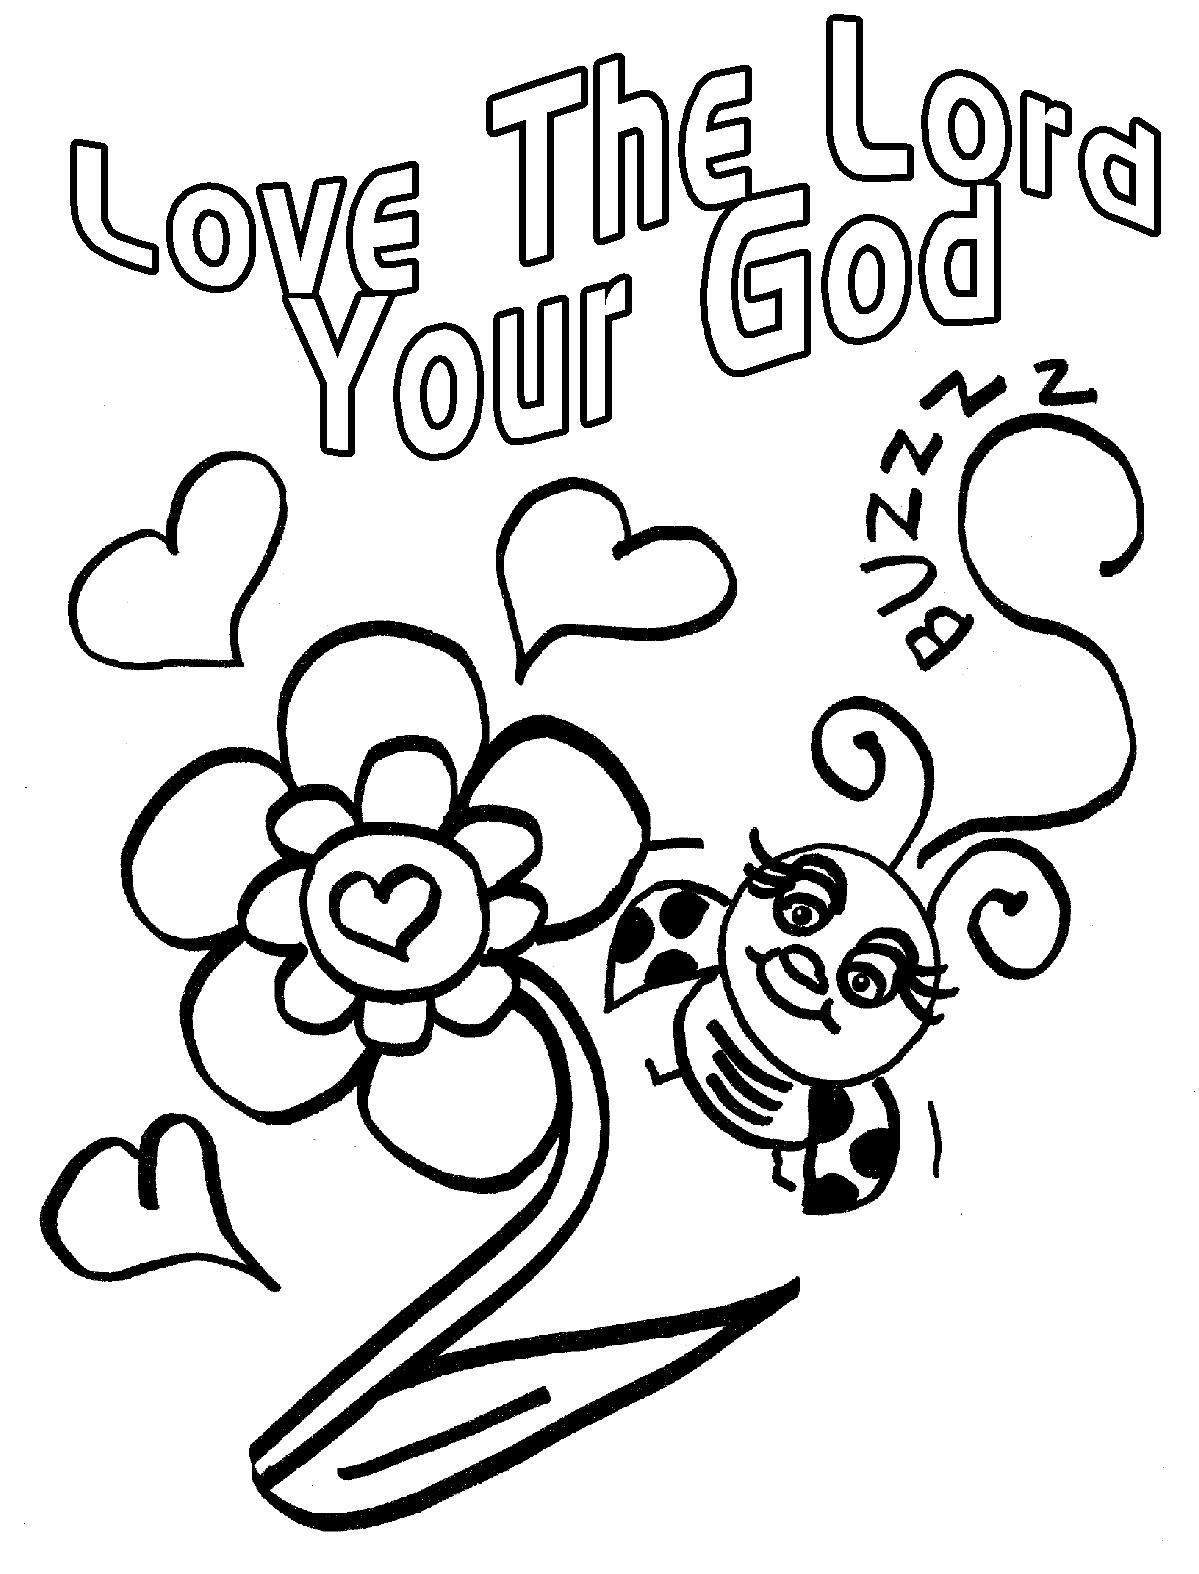 Printable Christian Valentine Coloring Pages John 3 16 Coloring Pages